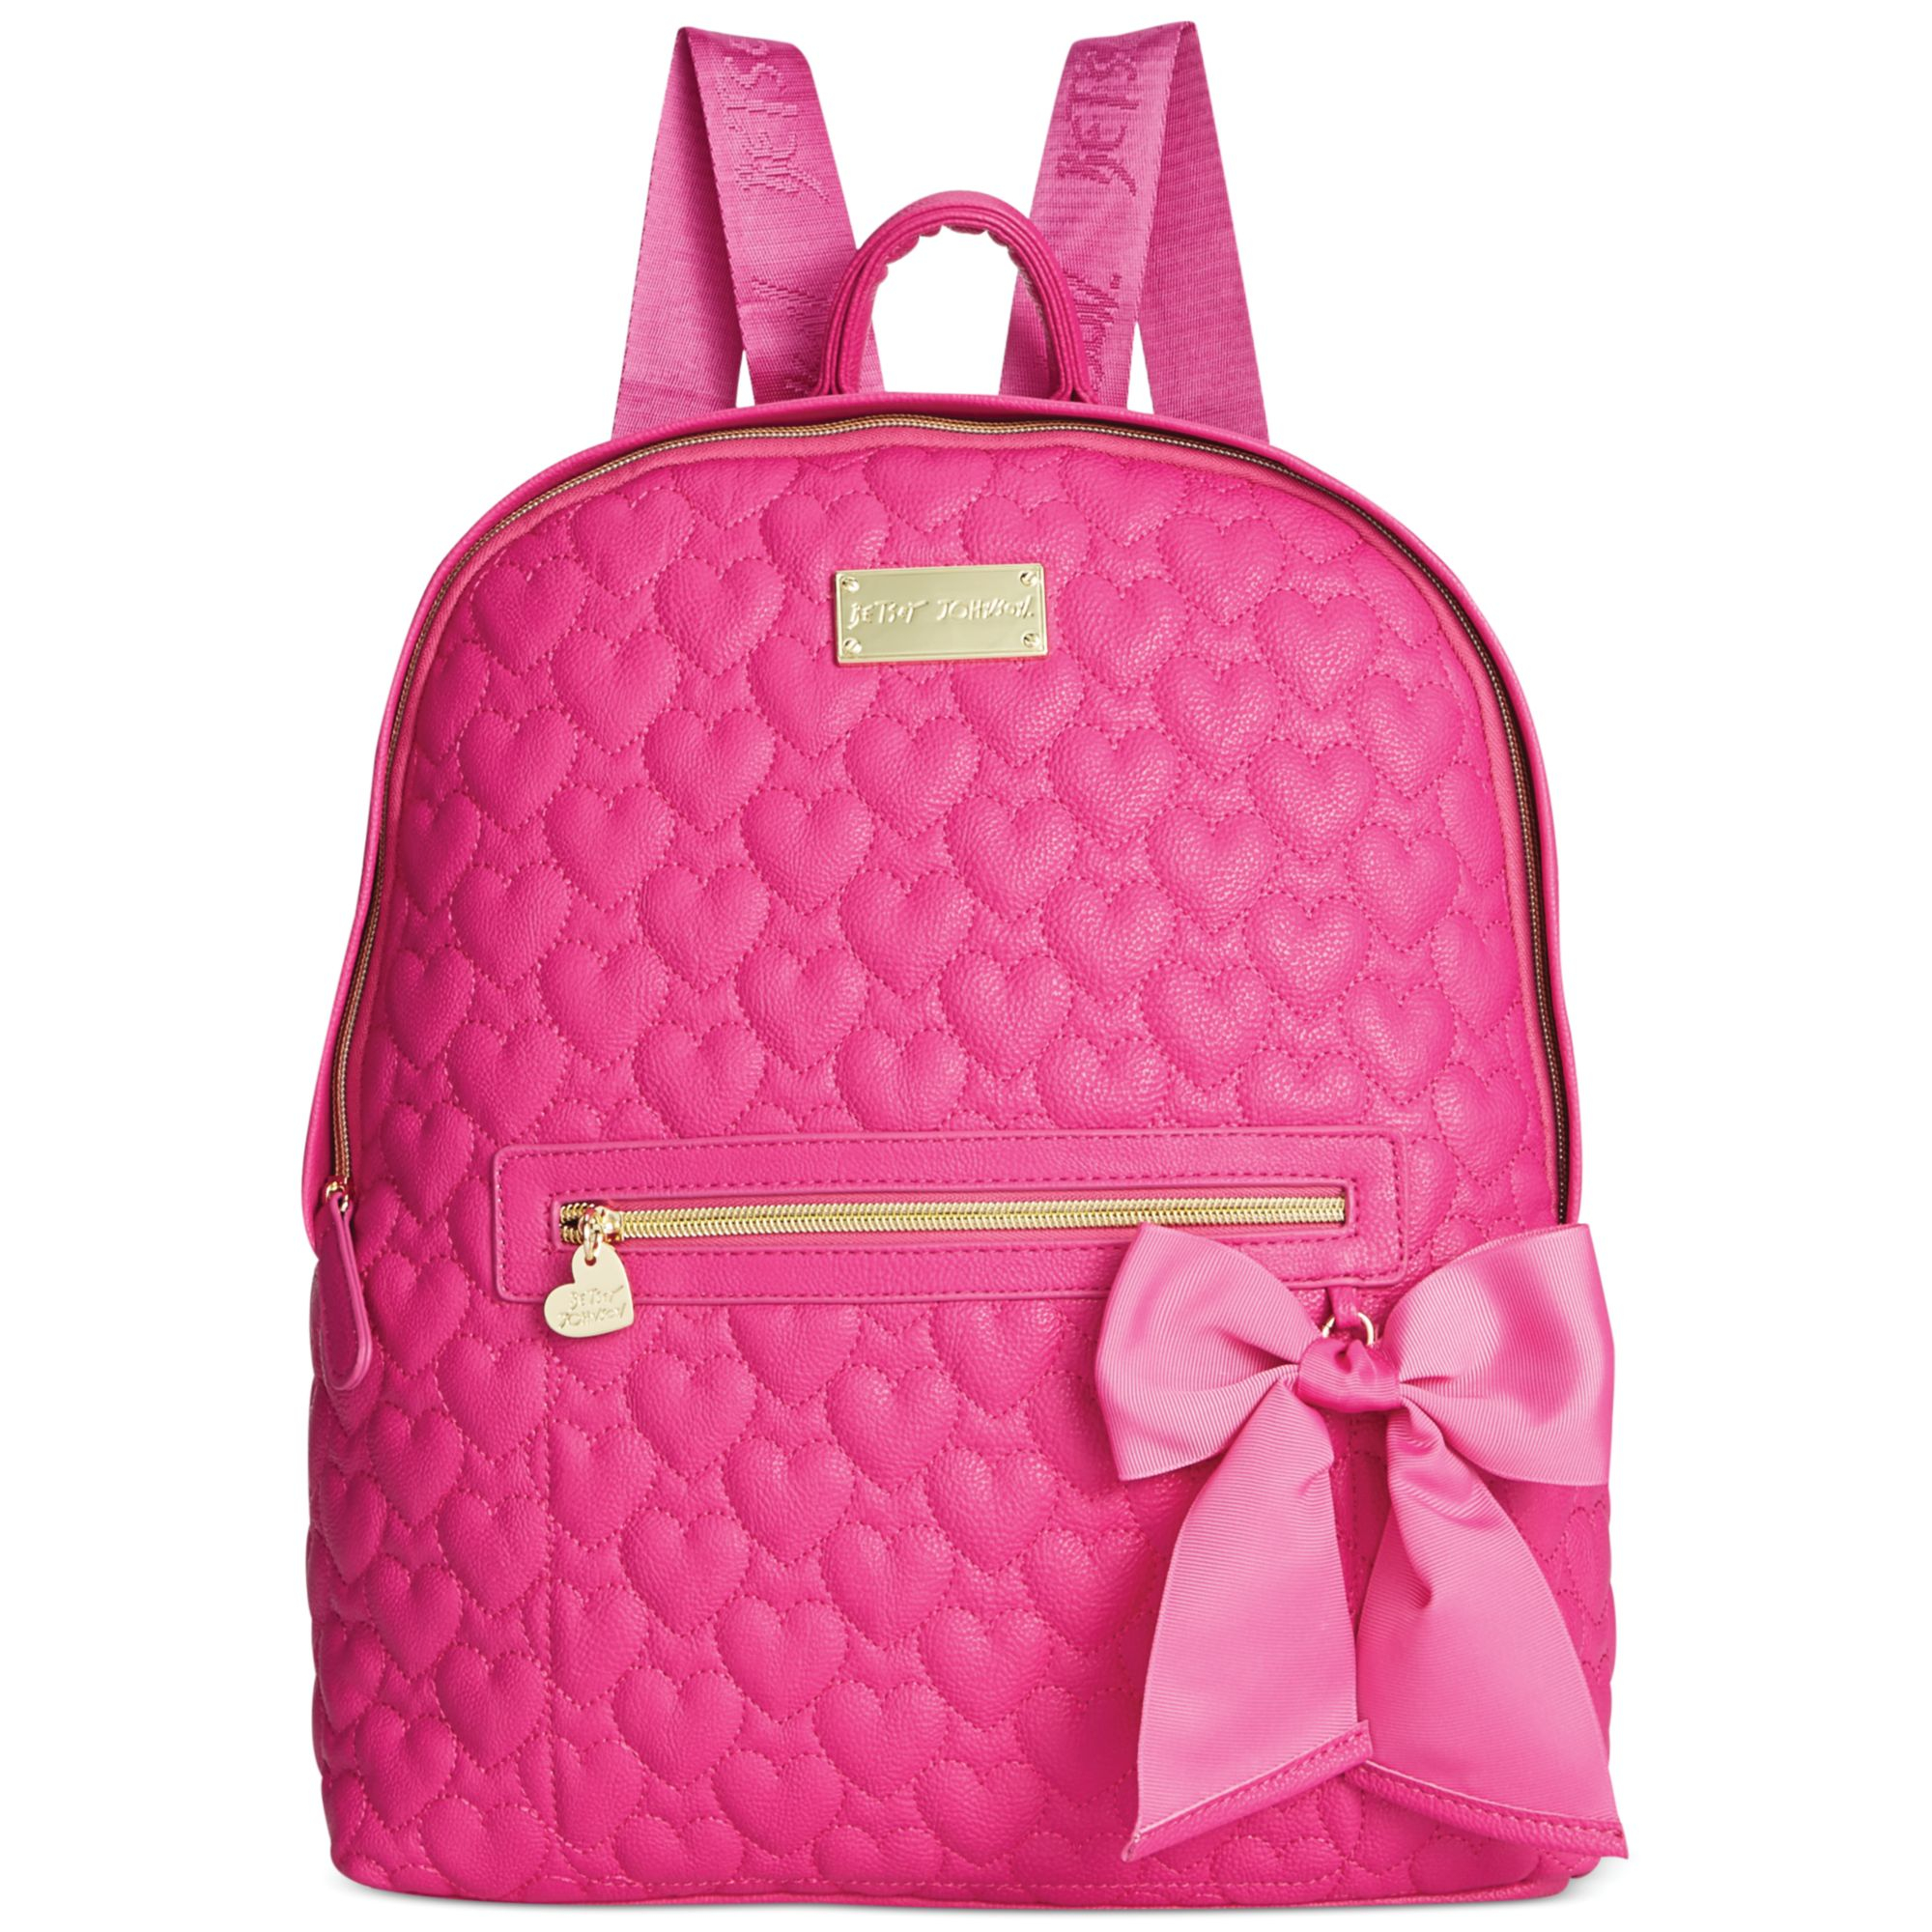 Betsey Johnson Quilted Backpack In Pink Lyst